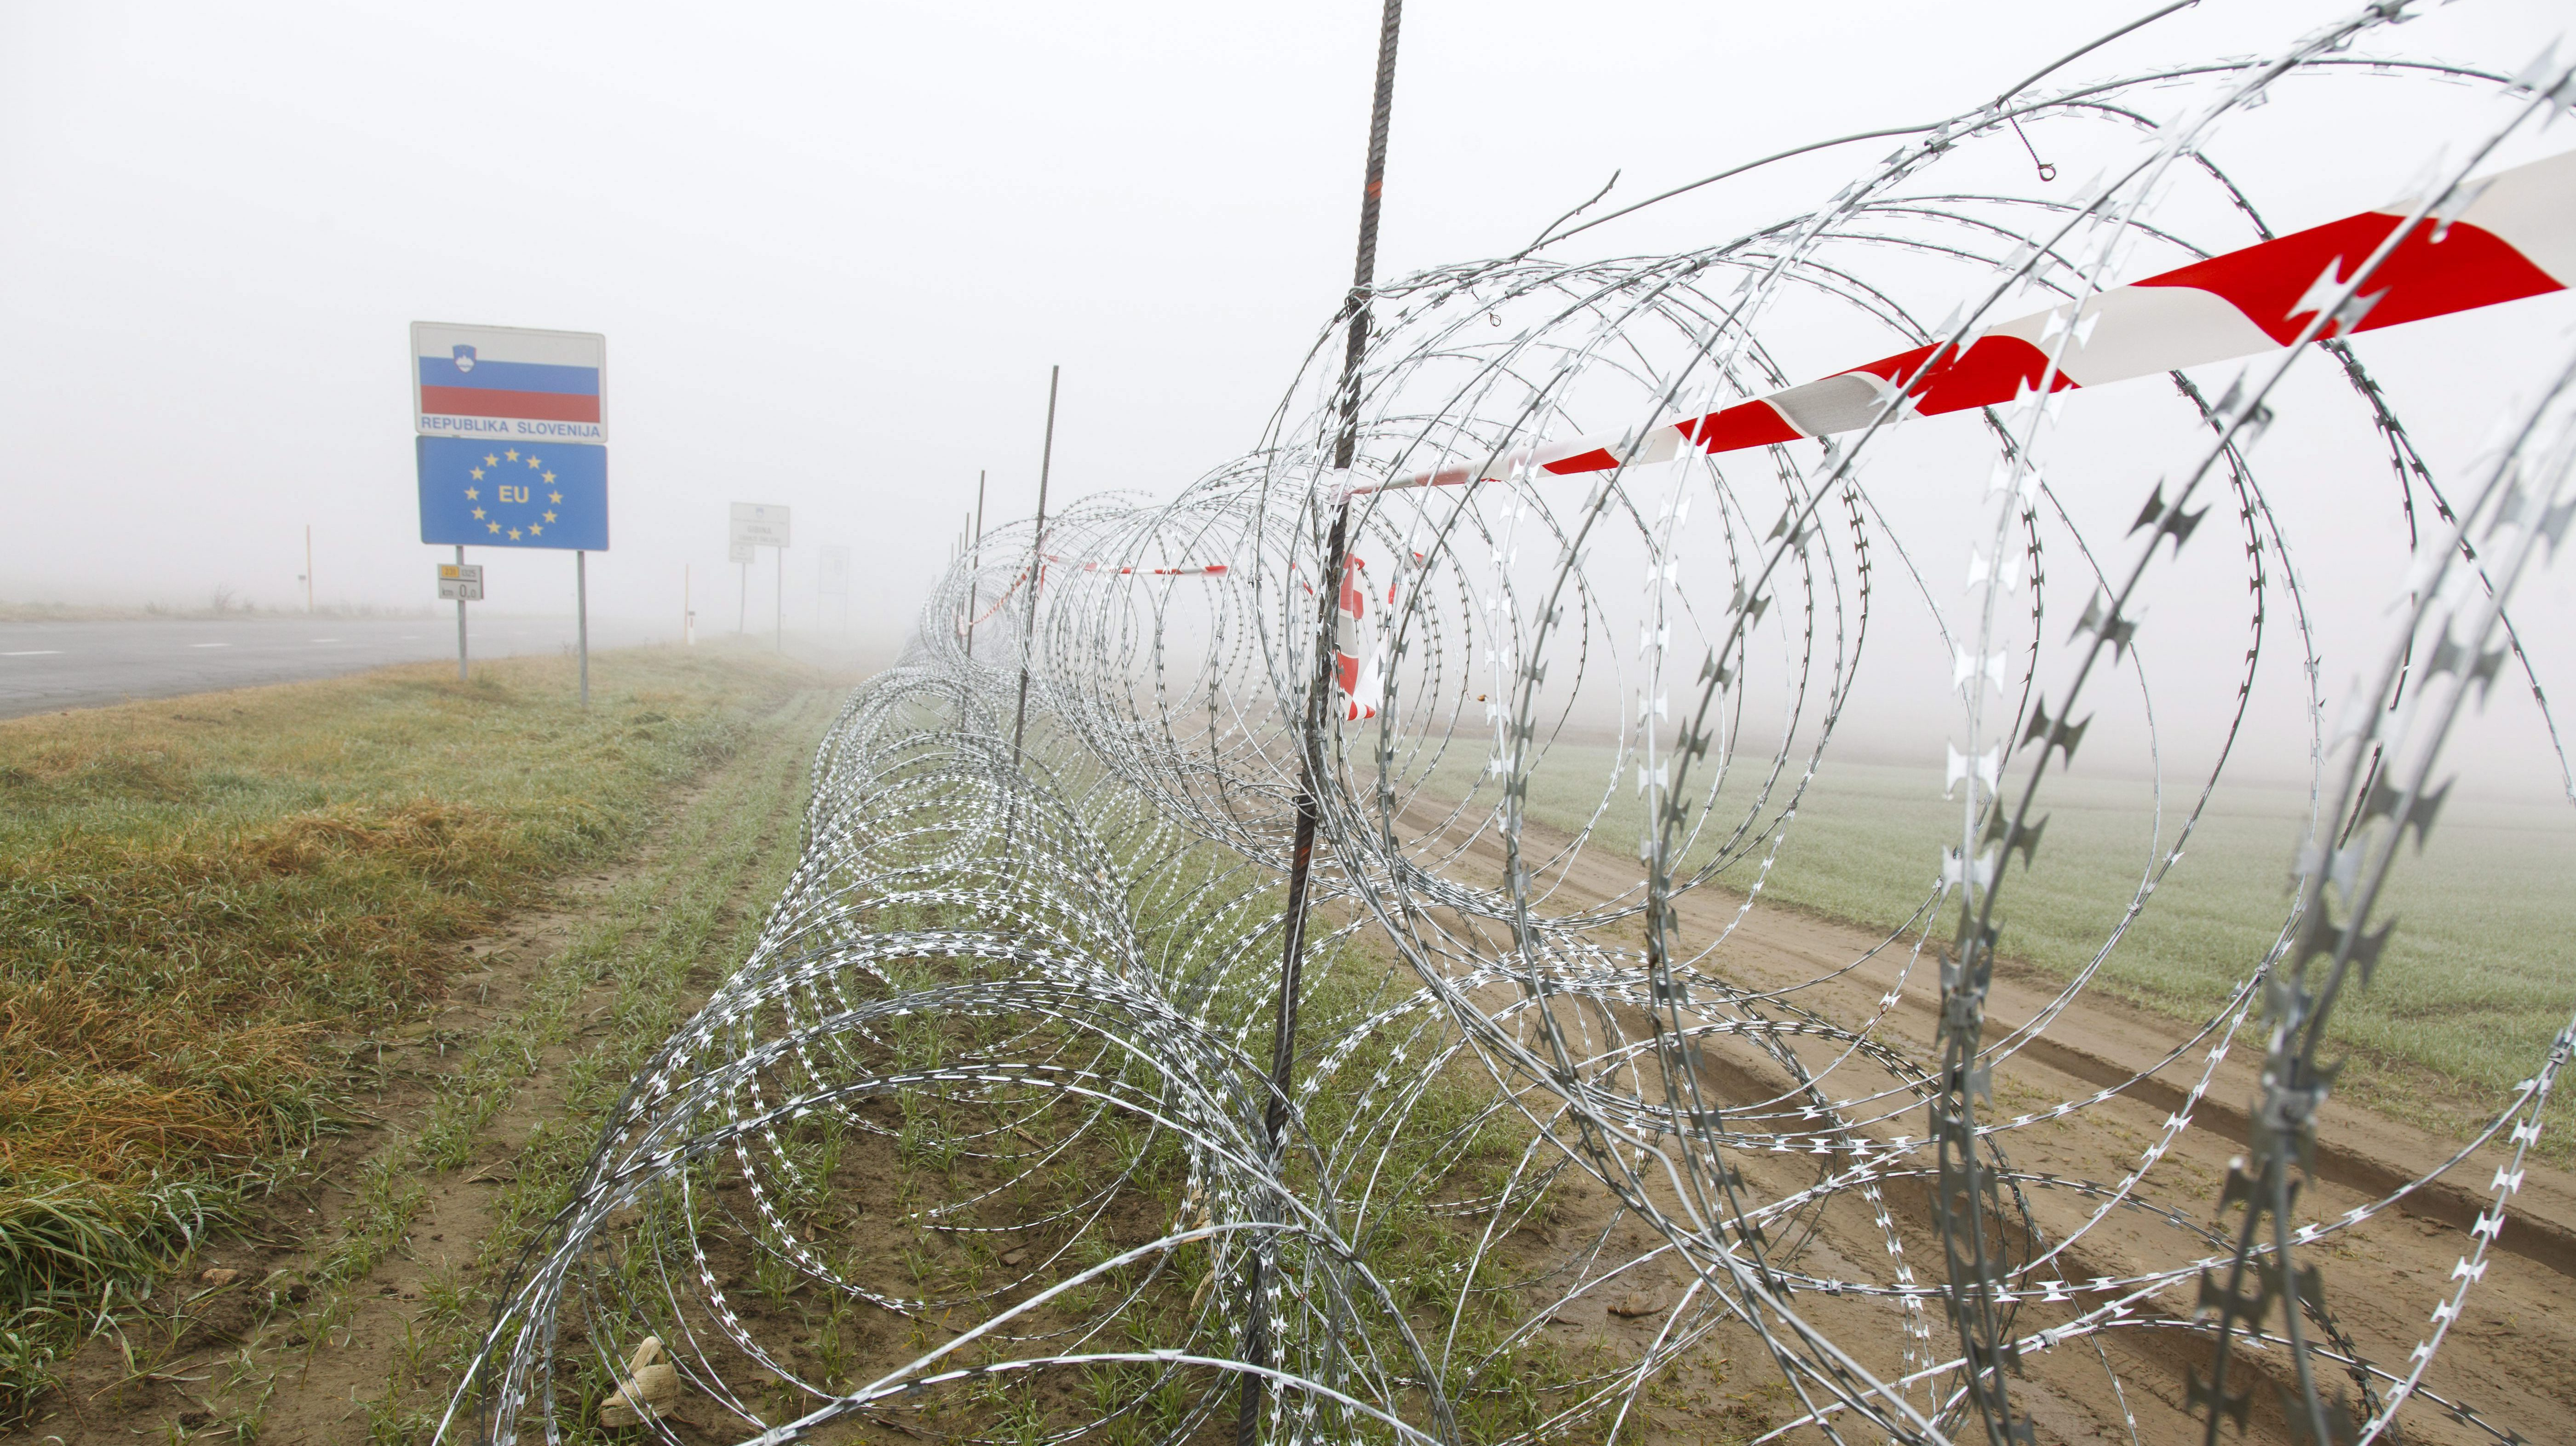 epa05053335 A razor wire fence on the Slovenian side of the Slovenian-Croatian border near Gibina, 188 kms northeast of Ljubljana, Slovenia, 03 December 2015. Slovenia has installed a nearly 100 kilometer-long fence in the past three weeks along its common border with Croatia.  EPA/GYORGY VARGA HUNGARY OUT